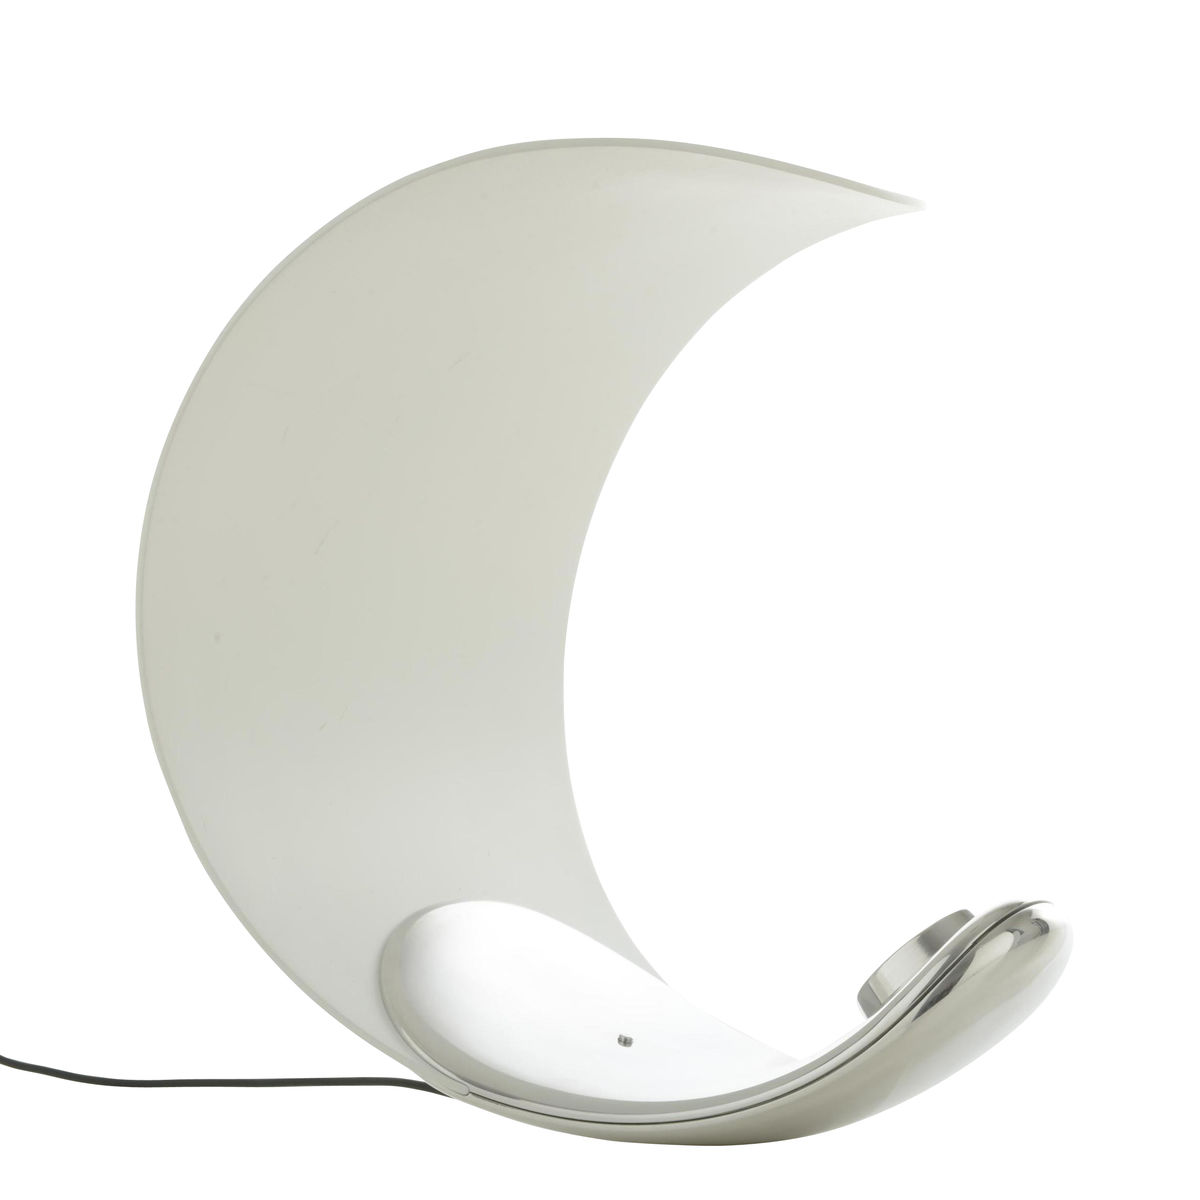 curl led table lamp  luceplan  ambientedirectcom - luceplan  curl led table lamp  whitesilverlightcolor klm